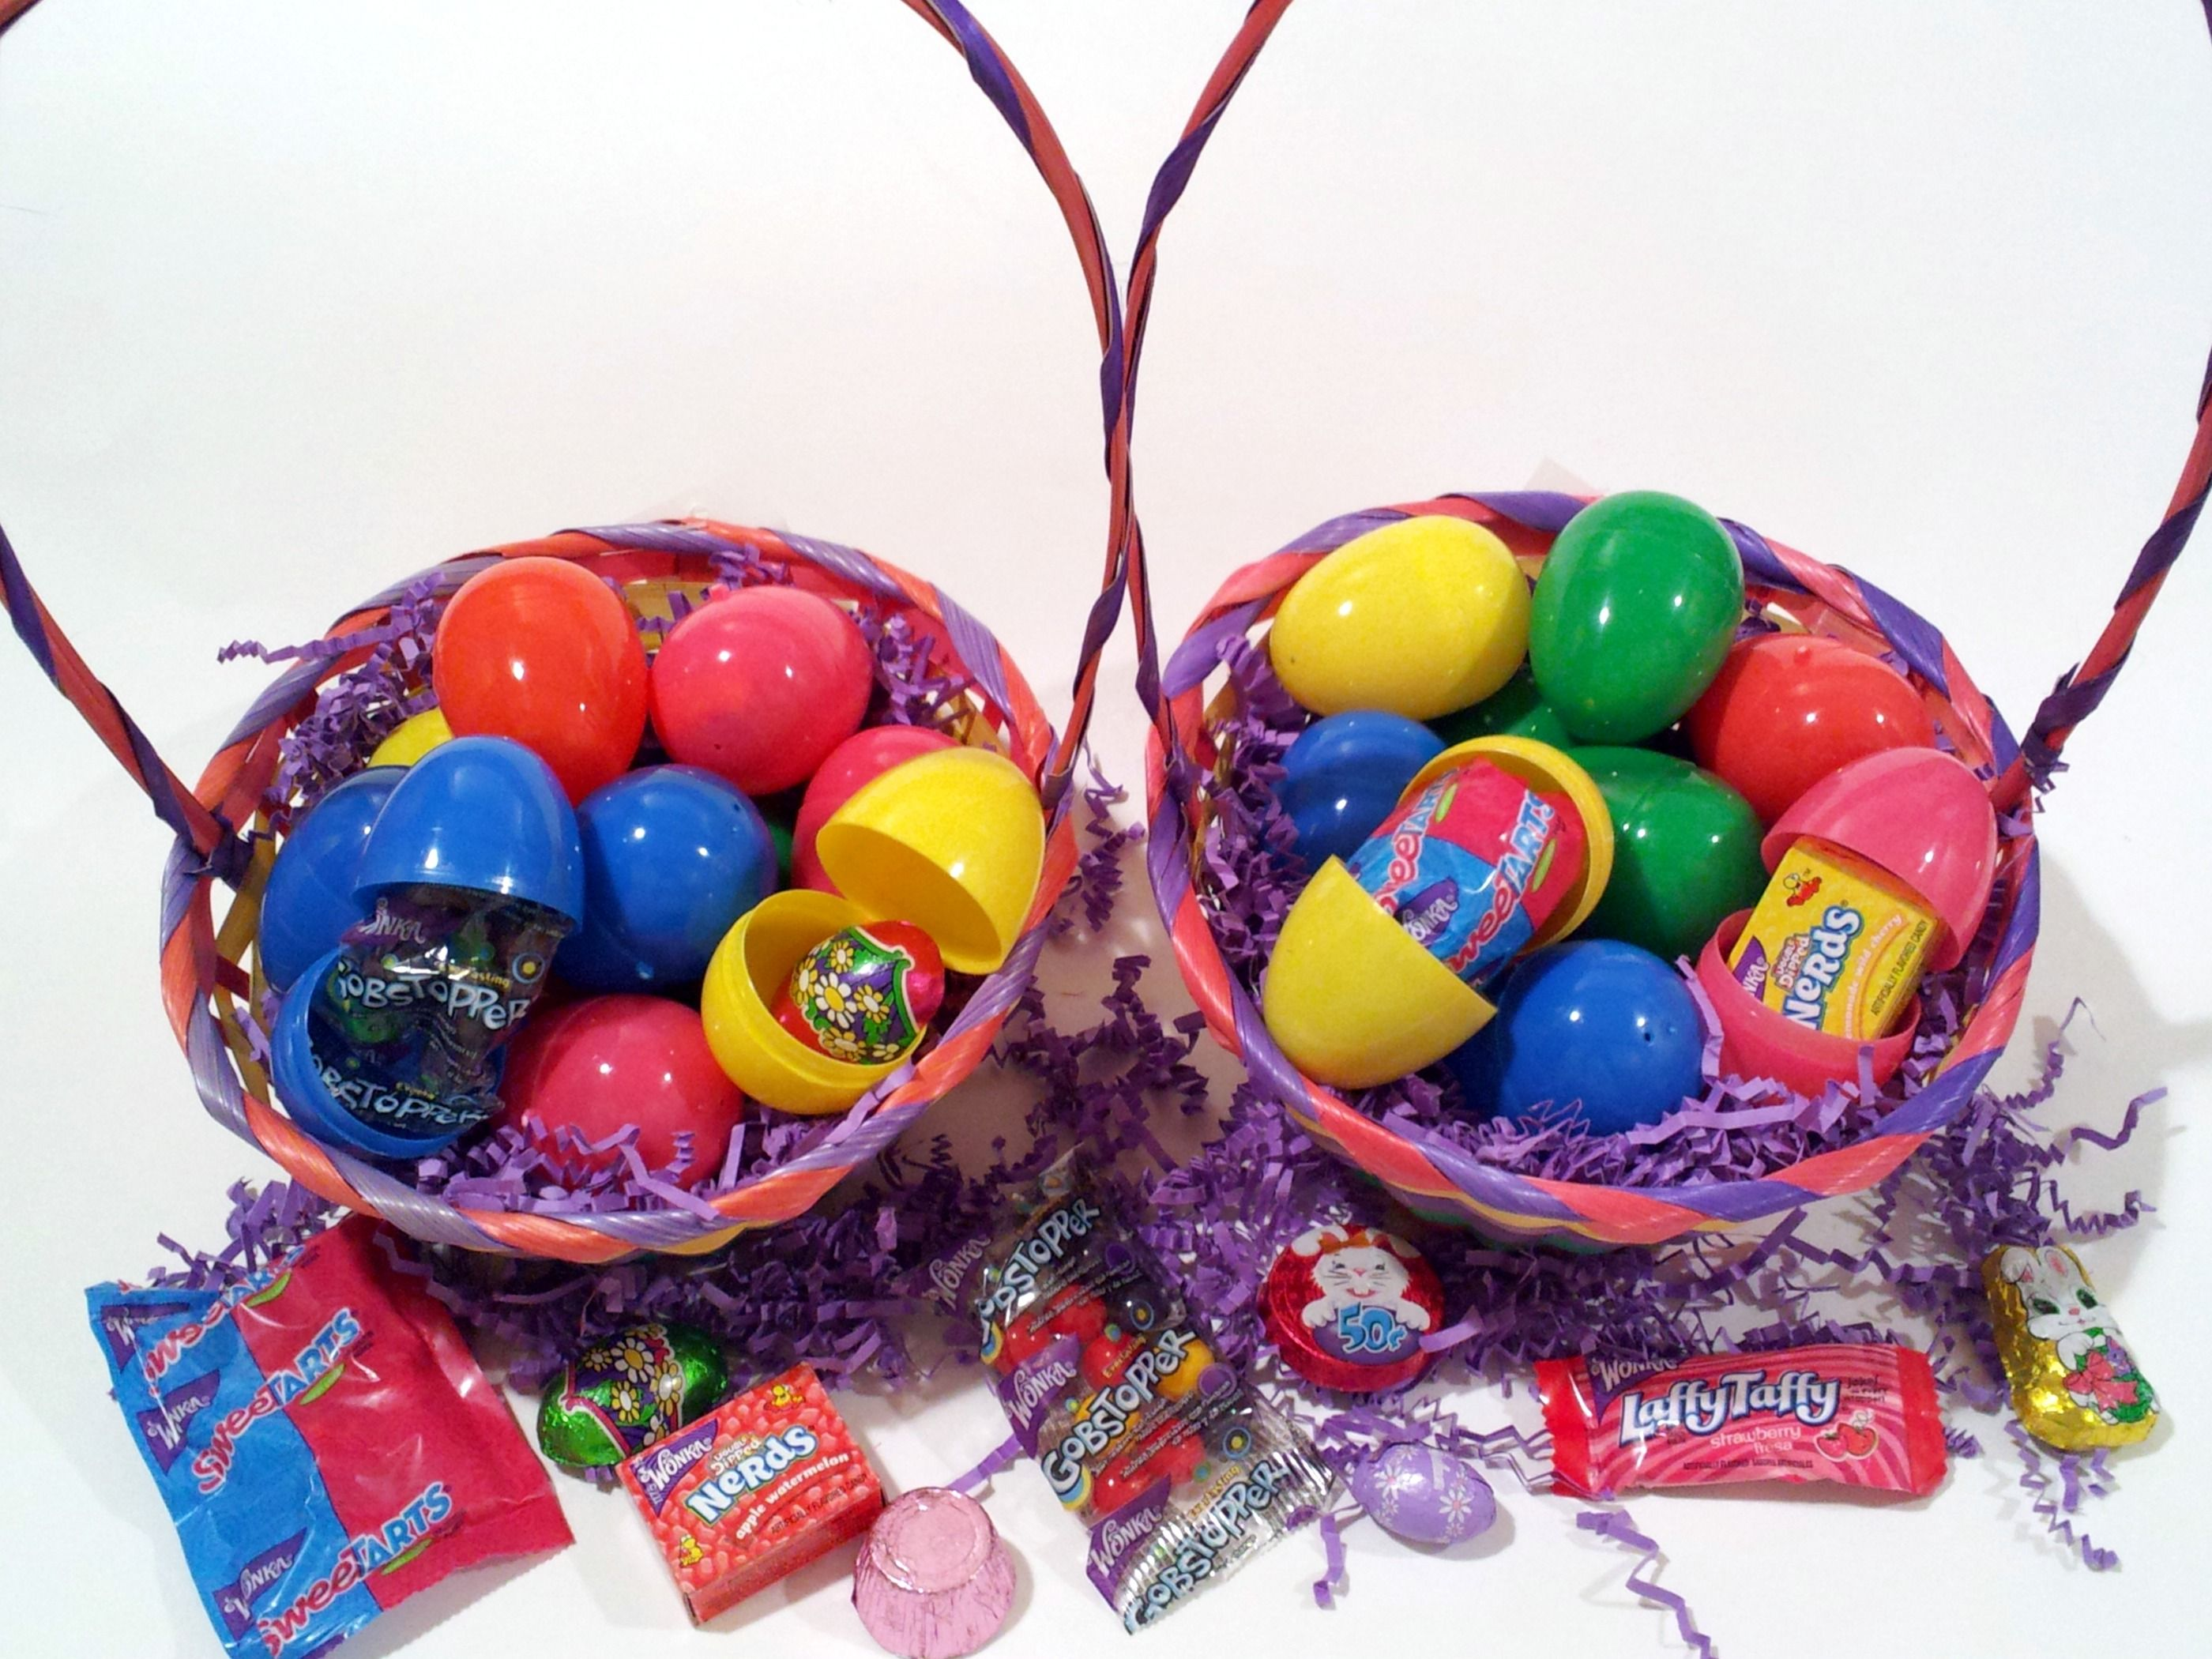 Pin by adam beadles on easter eggs and gift ideas pinterest 125 pre filled bulk easter eggs for hunt mixed brand candies chocolates toys multi negle Image collections